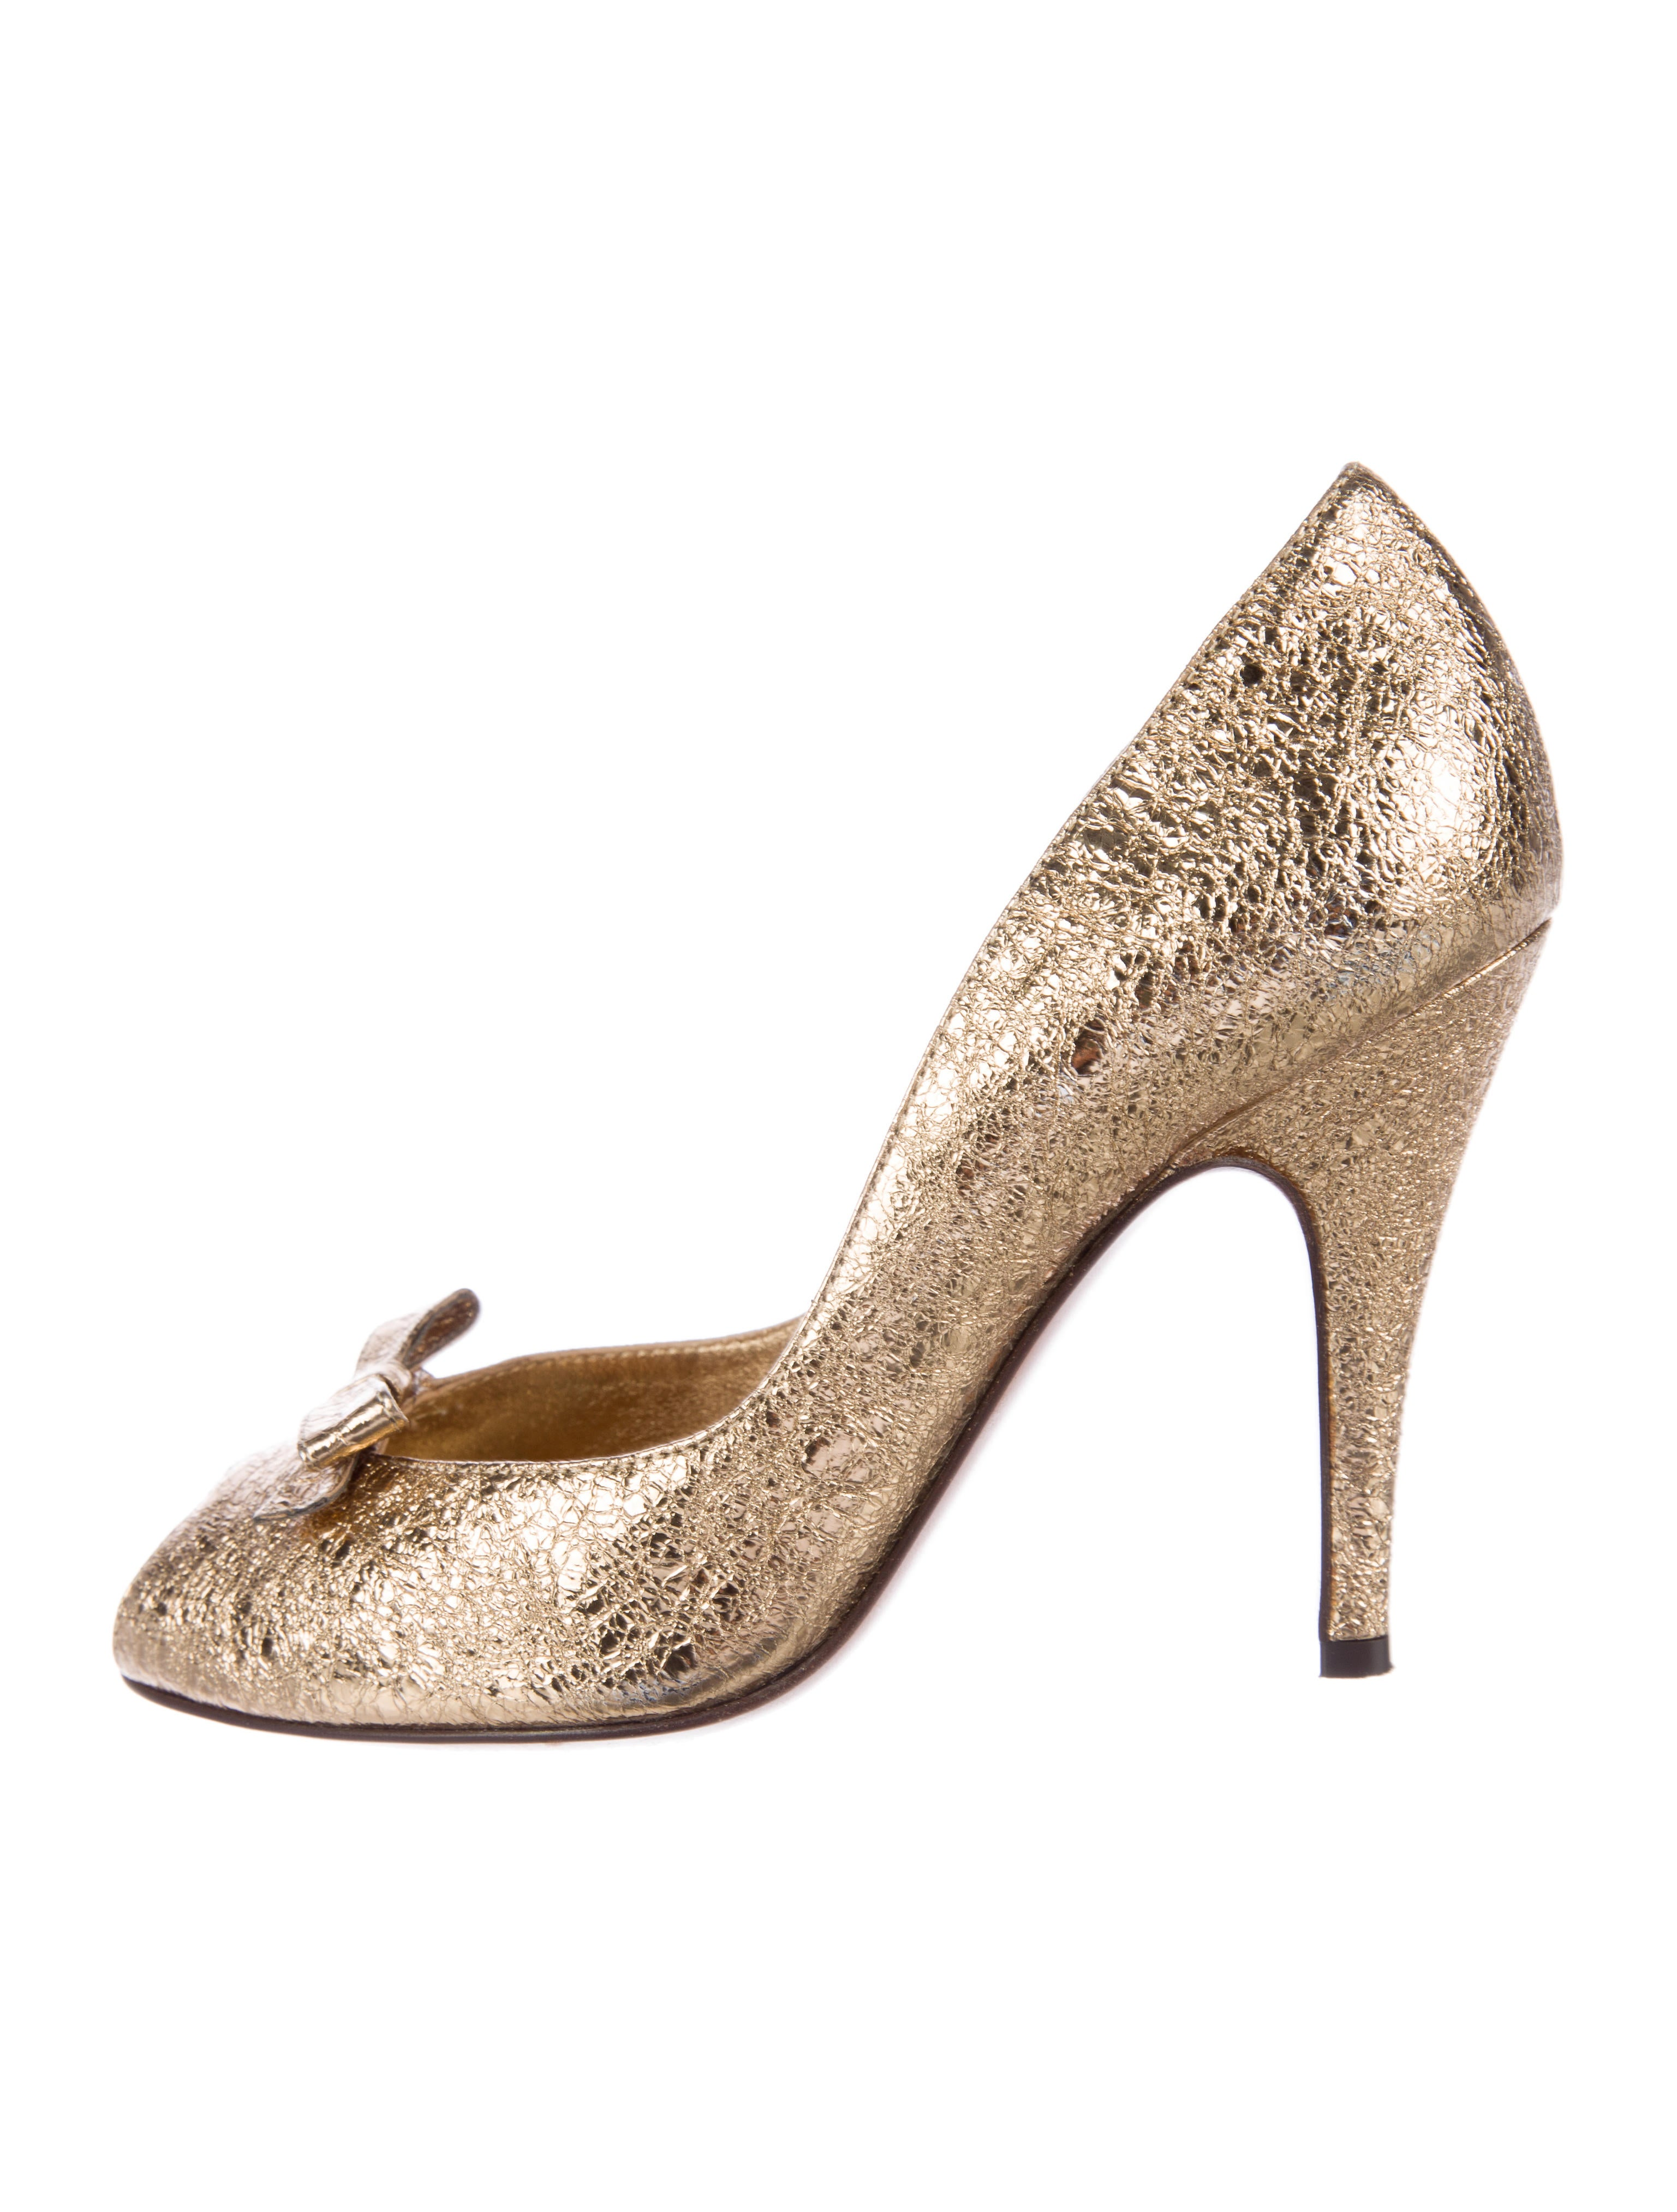 outlet store online Moschino Cheap and Chic Metallic Peep-Toe Pumps clearance release dates latest collections online nQcfHuF